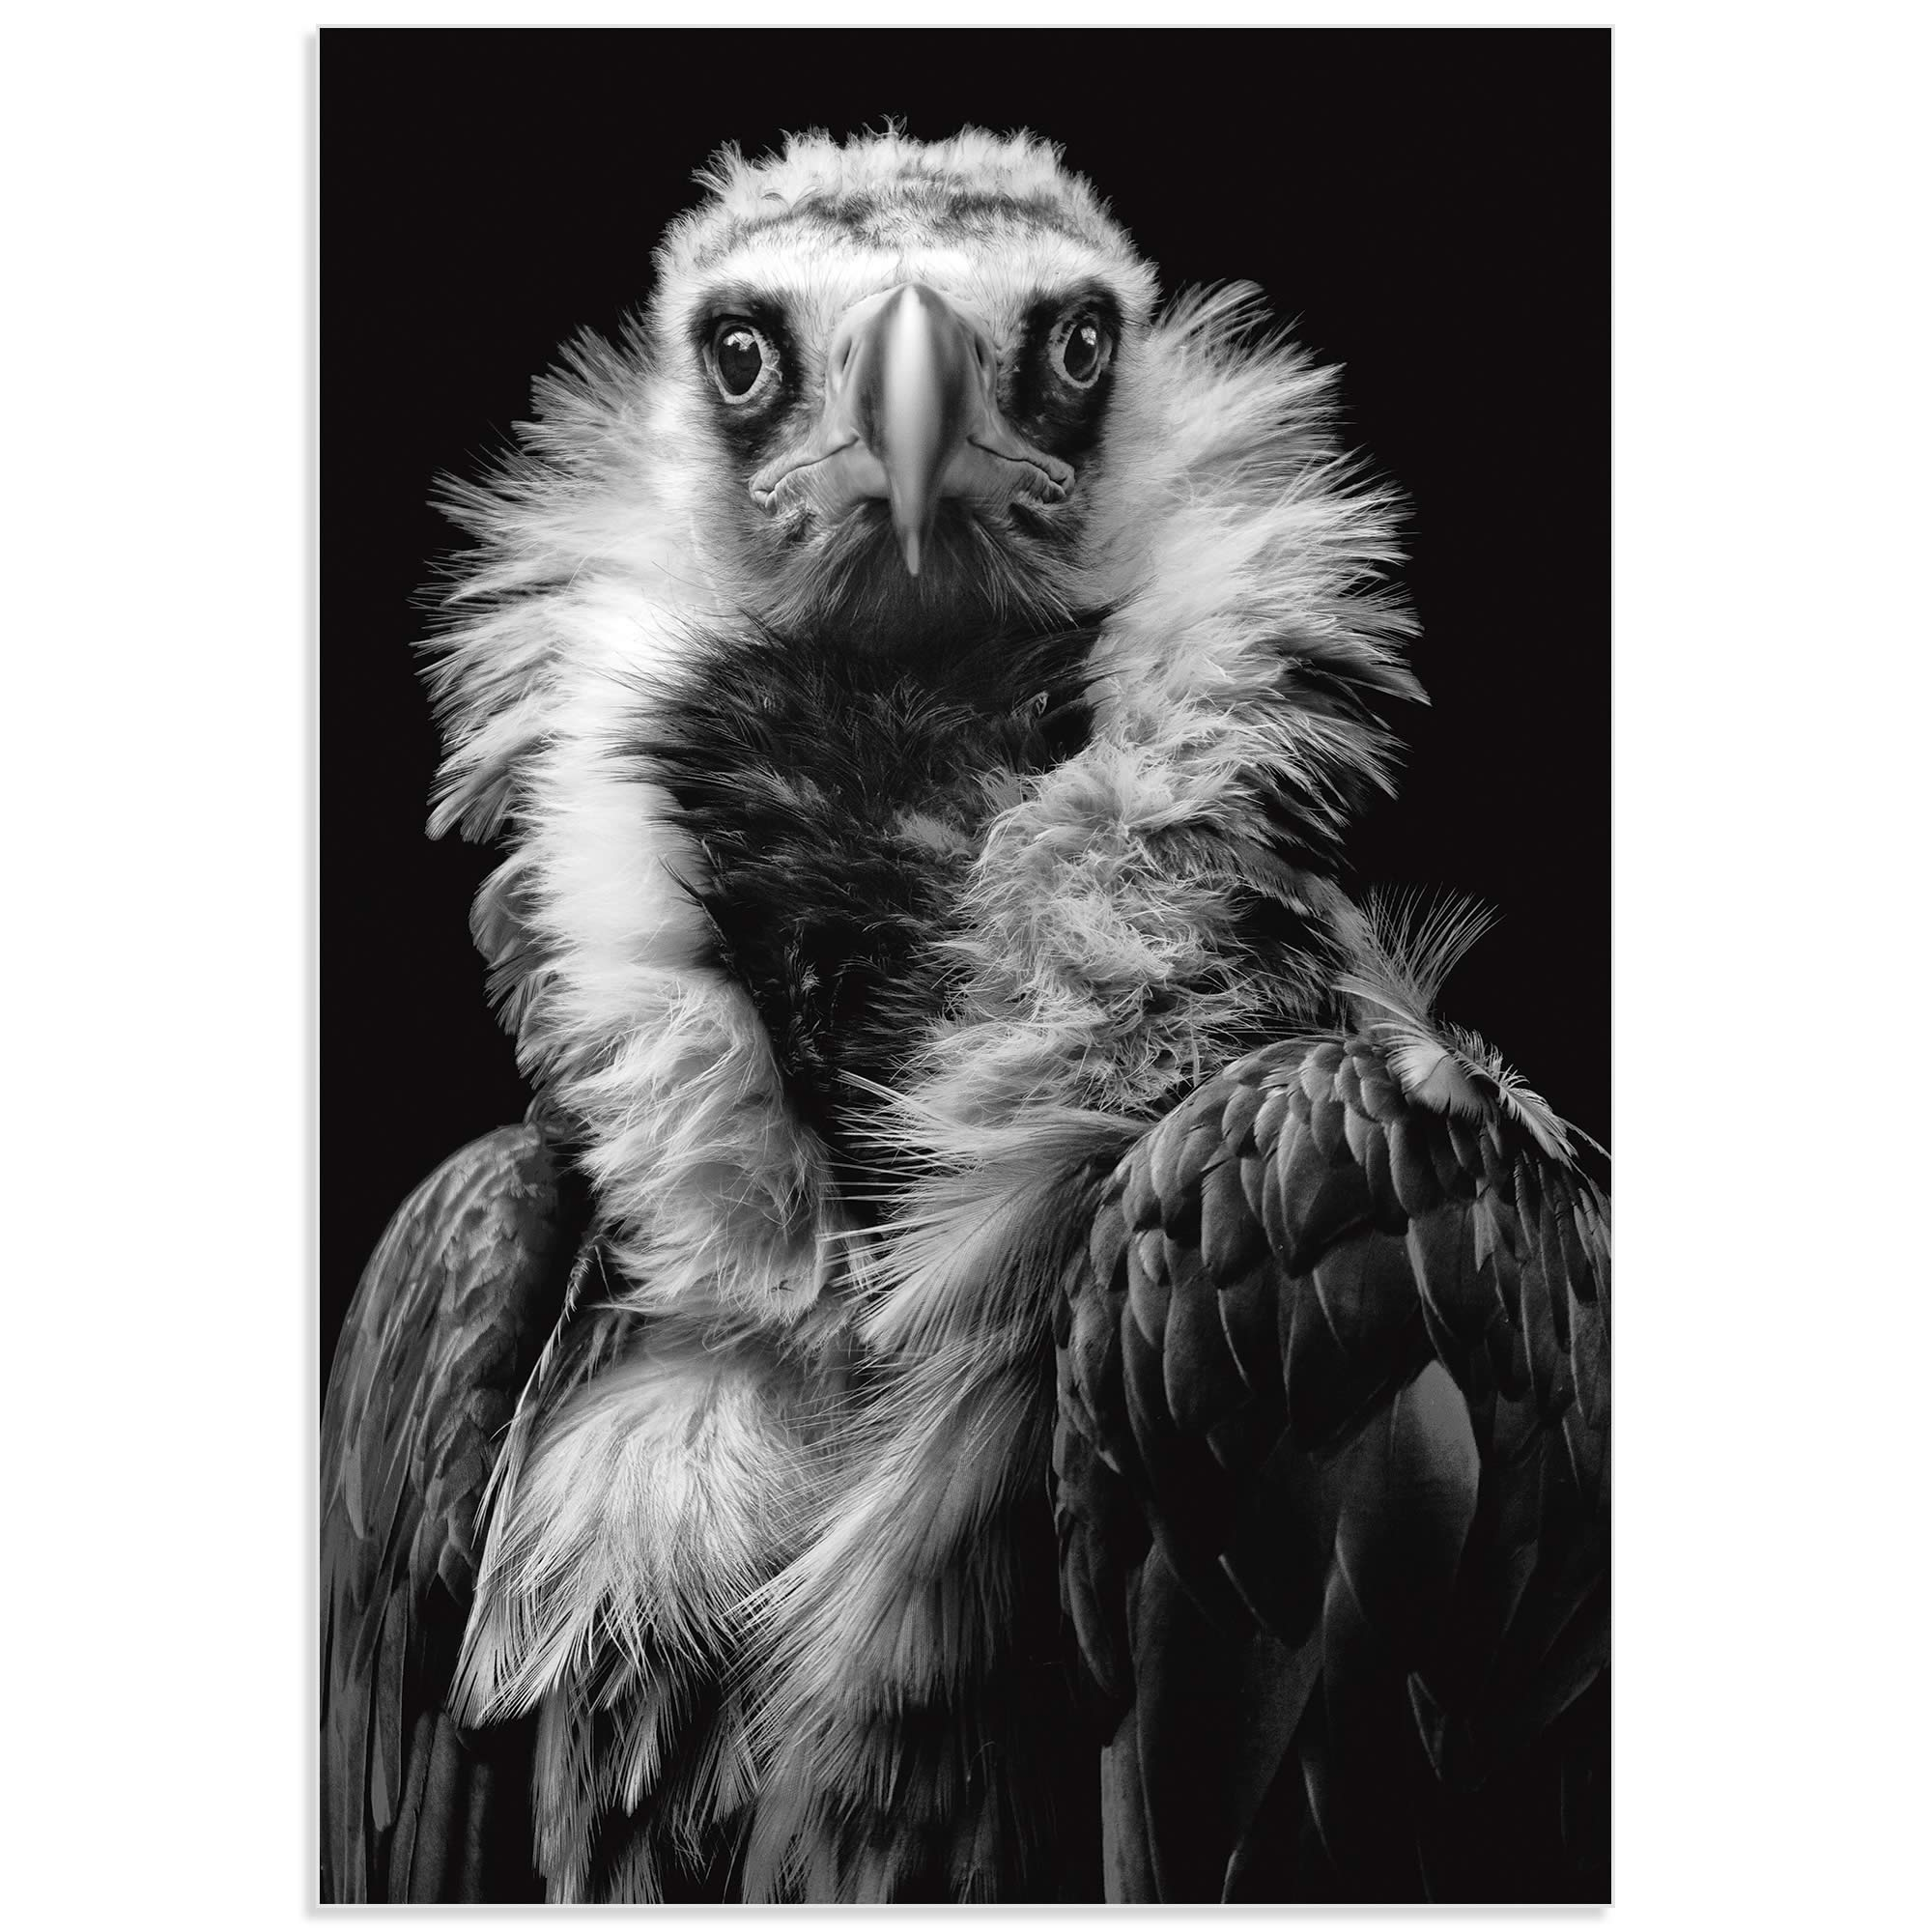 His Eminence the Vulture by Henrik Spranz - Vulture Wall Art on Metal or Acrylic - Alternate View 2